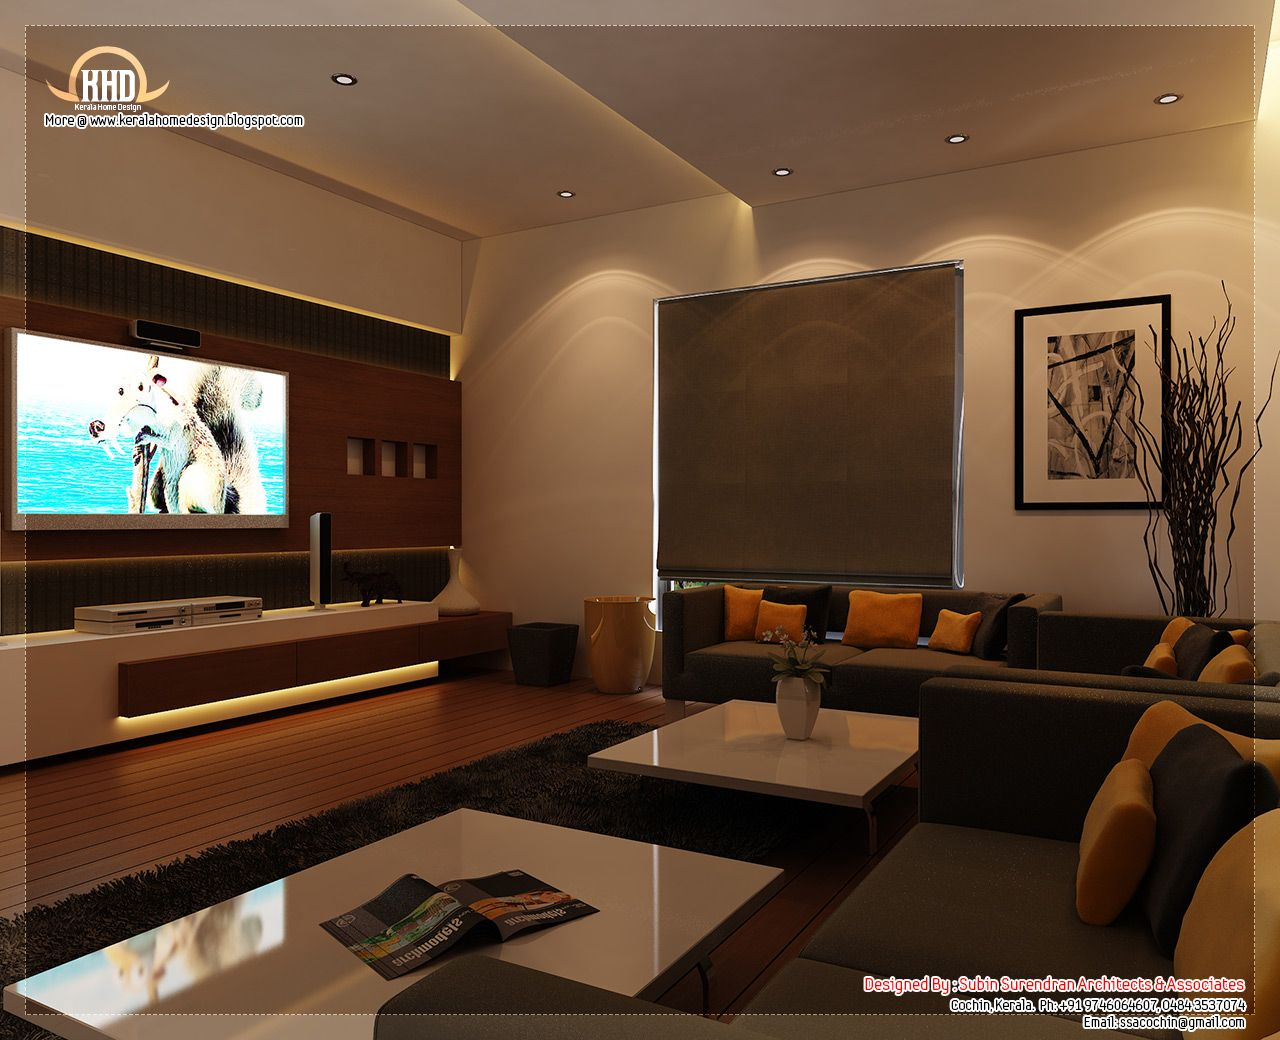 Beautifully Rendered Home Interior Design Concepts By Subin Surendran Architects Kochi Kerala